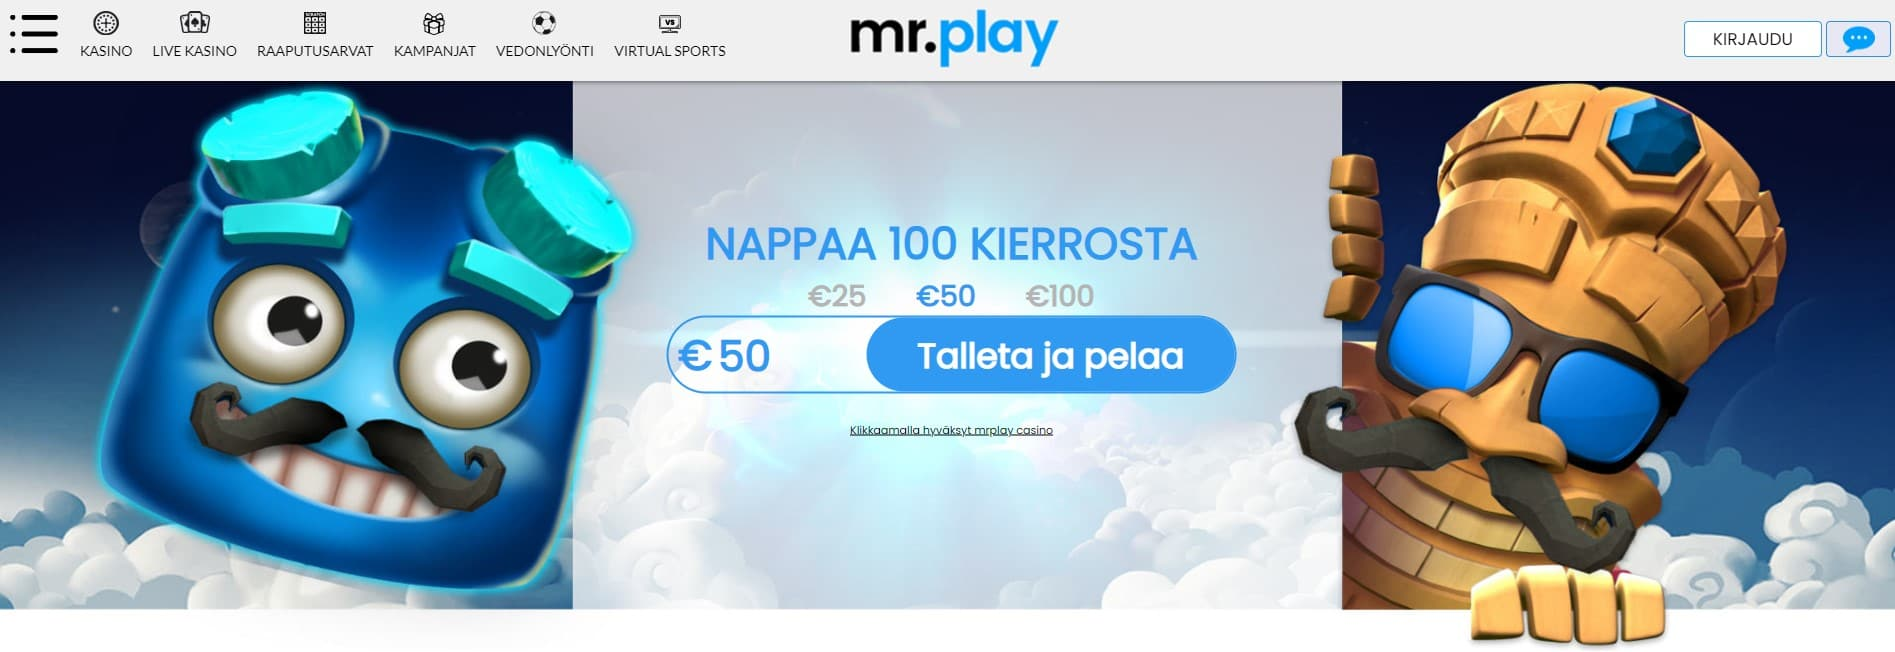 Mr Play kasino etusivu